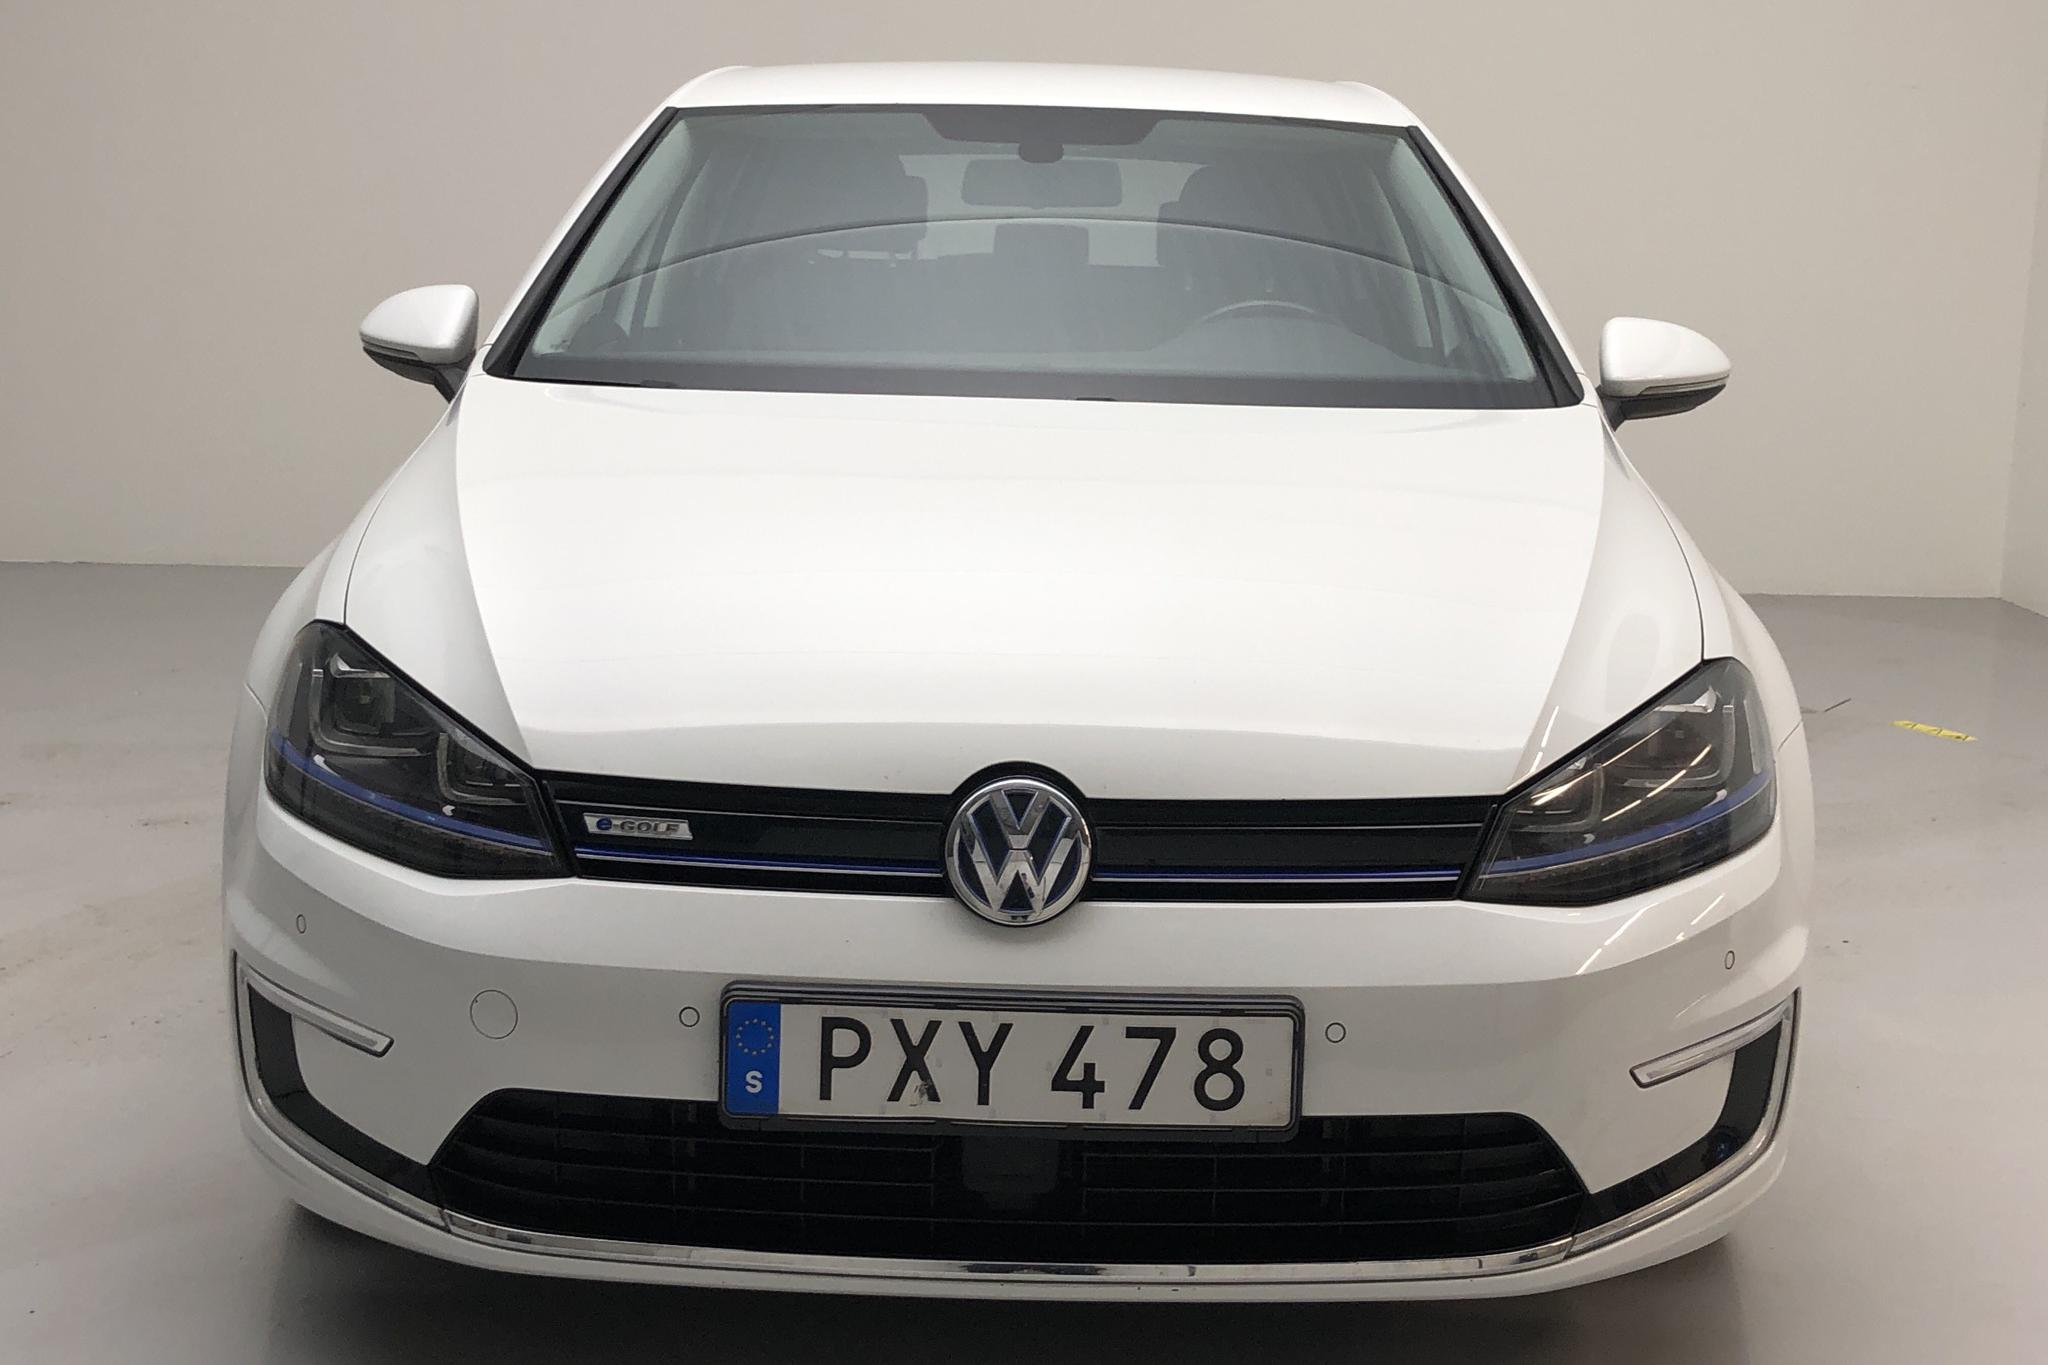 VW e-Golf VII 5dr (115hk) - 42 180 km - Automatic - white - 2015